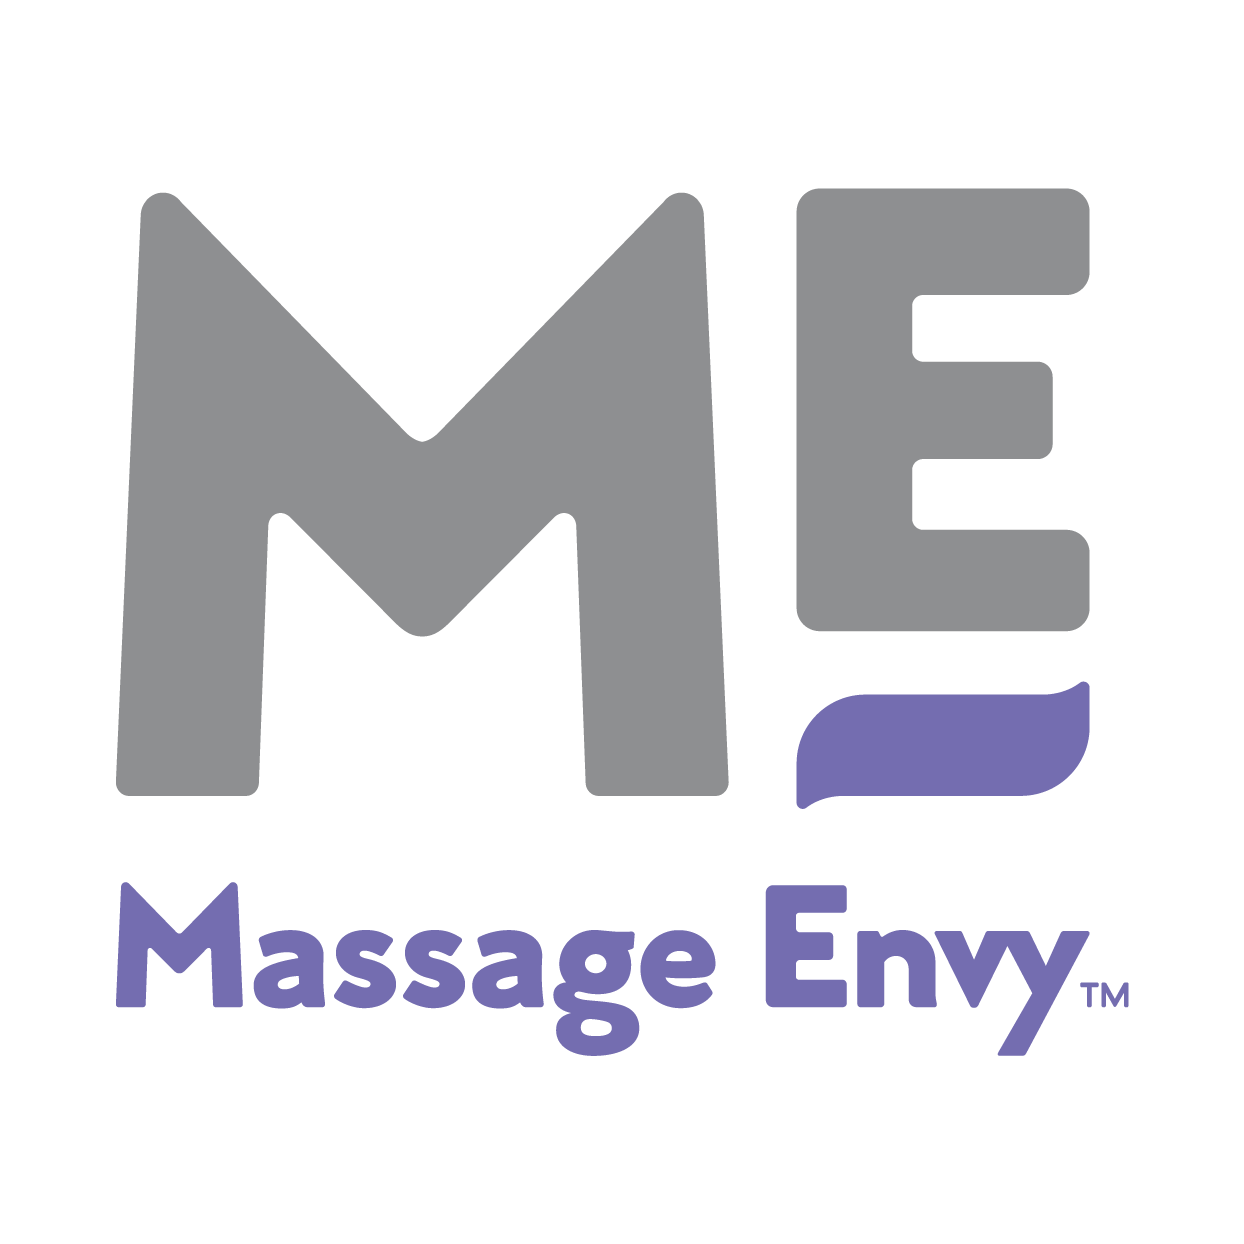 Massage Envy in CA Ontario 91764 Massage Envy - Ontario 4150 E 4th Street Suite A  (909)294-2222